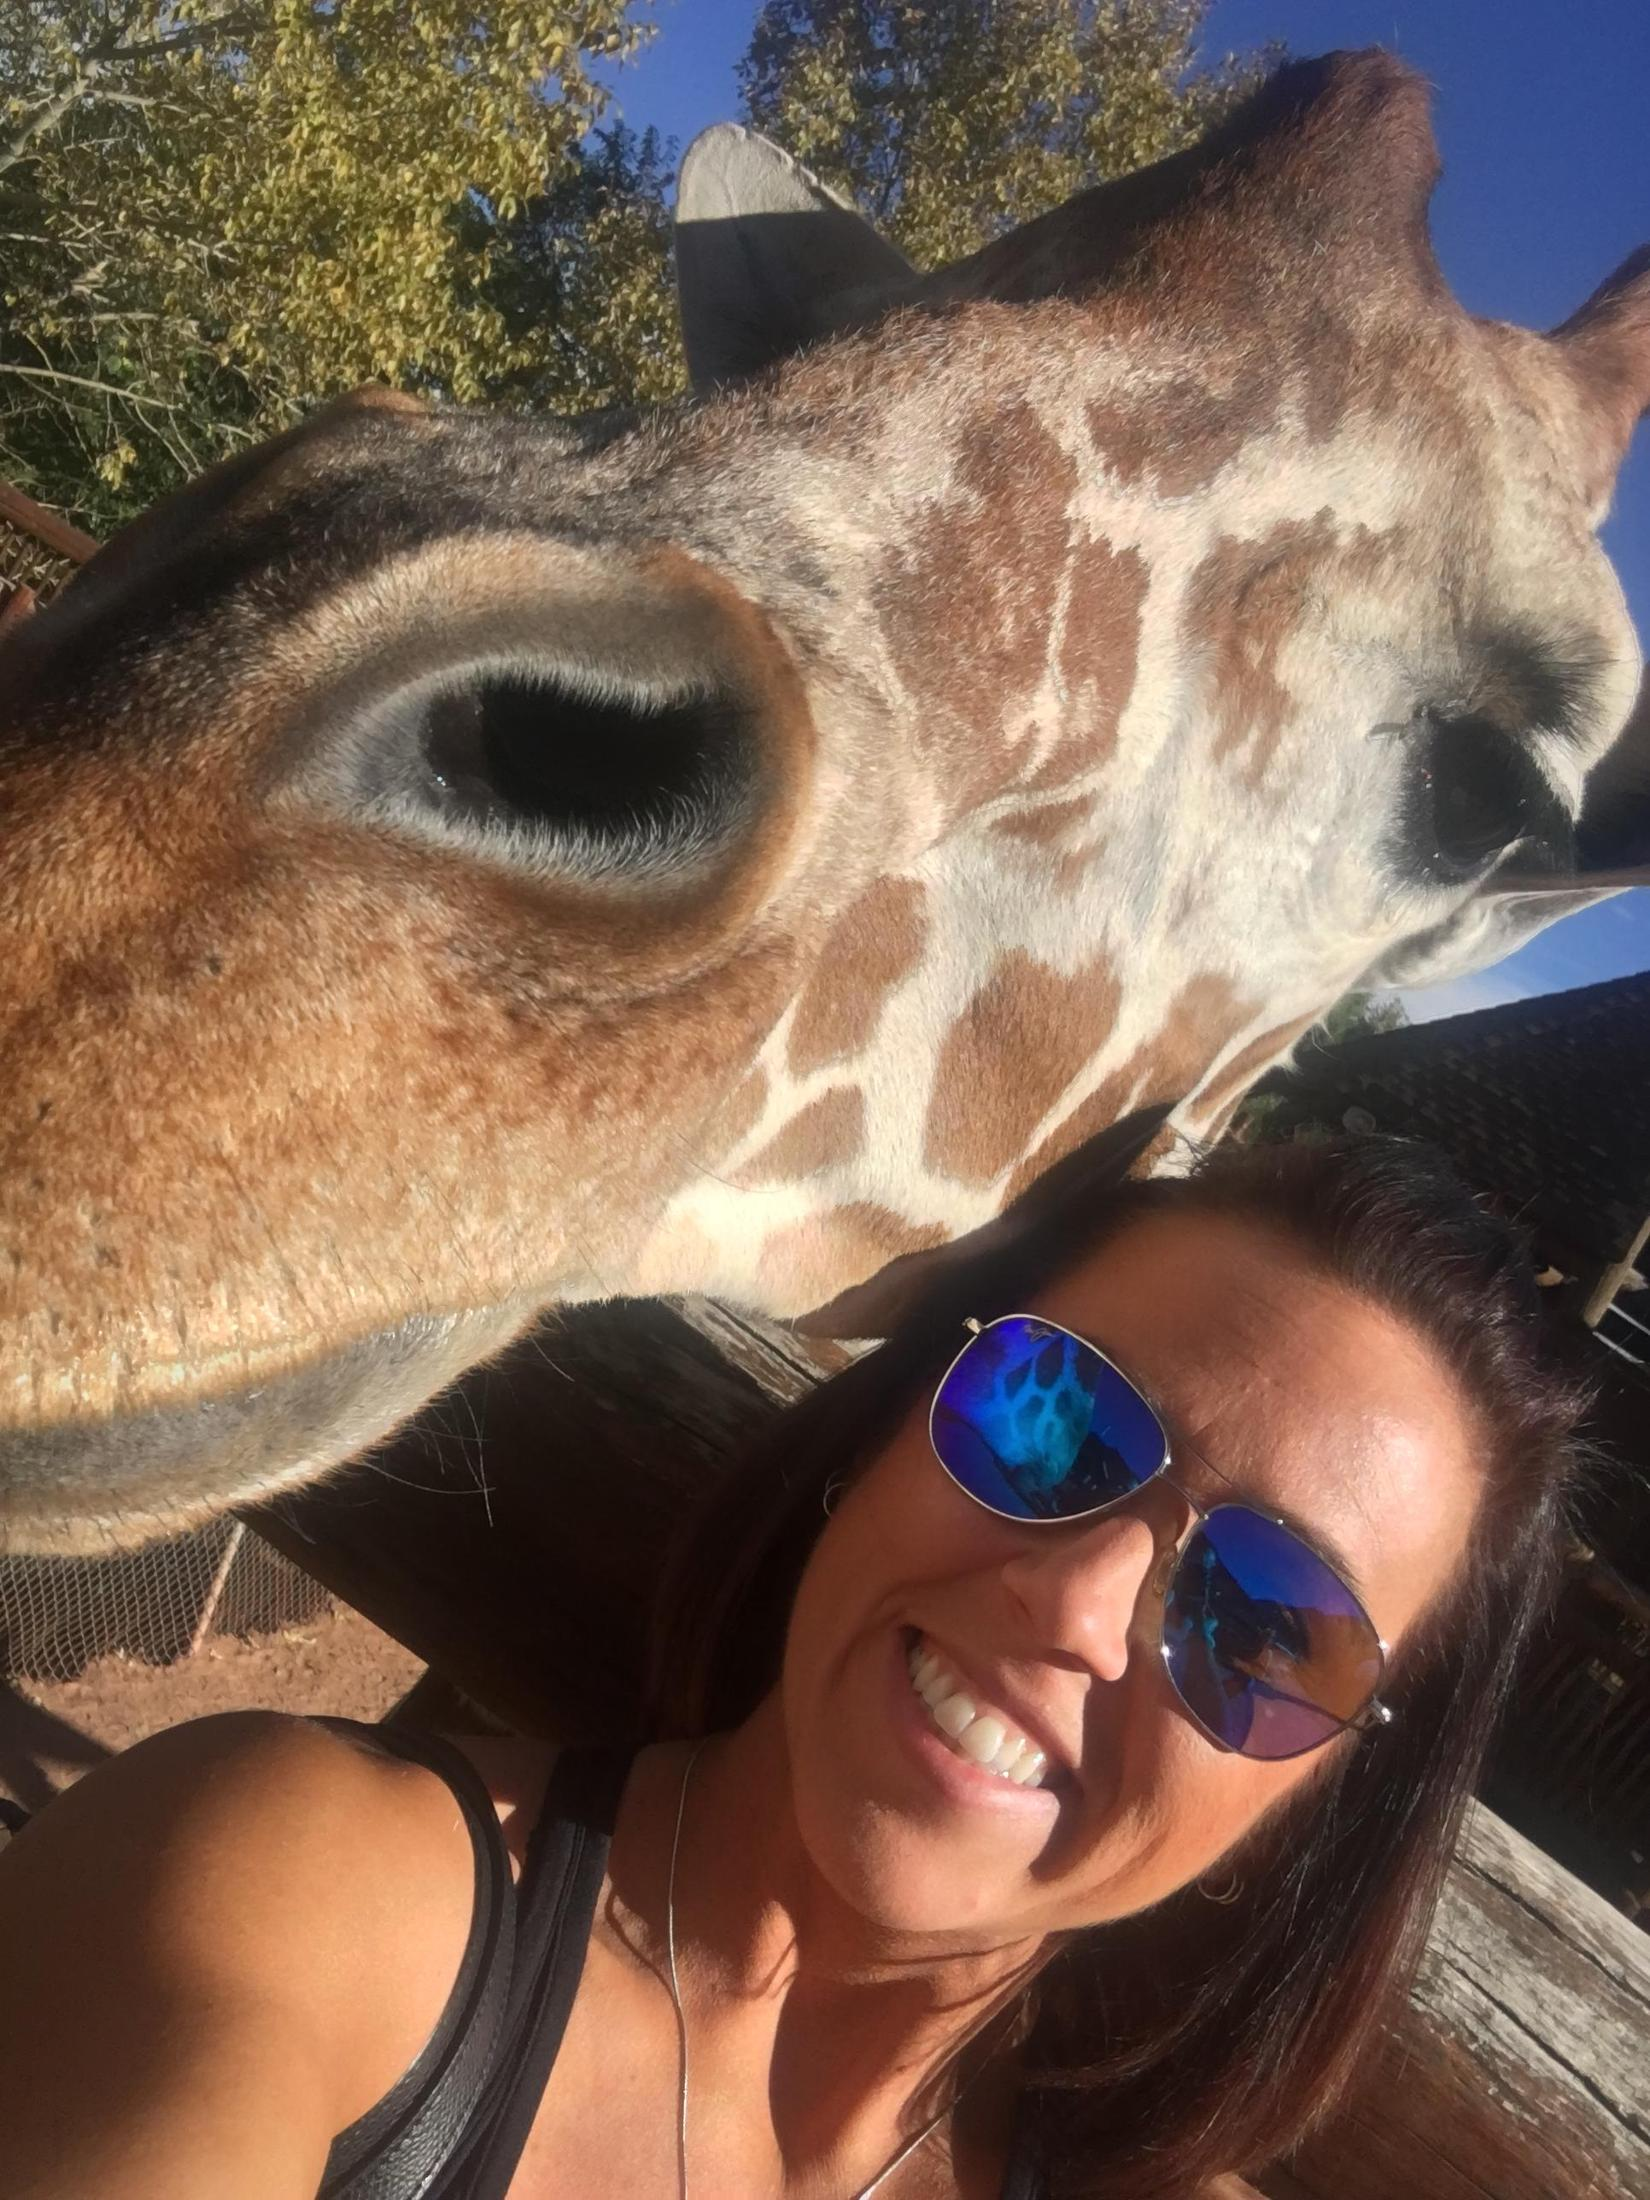 My life was made when I took a picture with a giraffe!